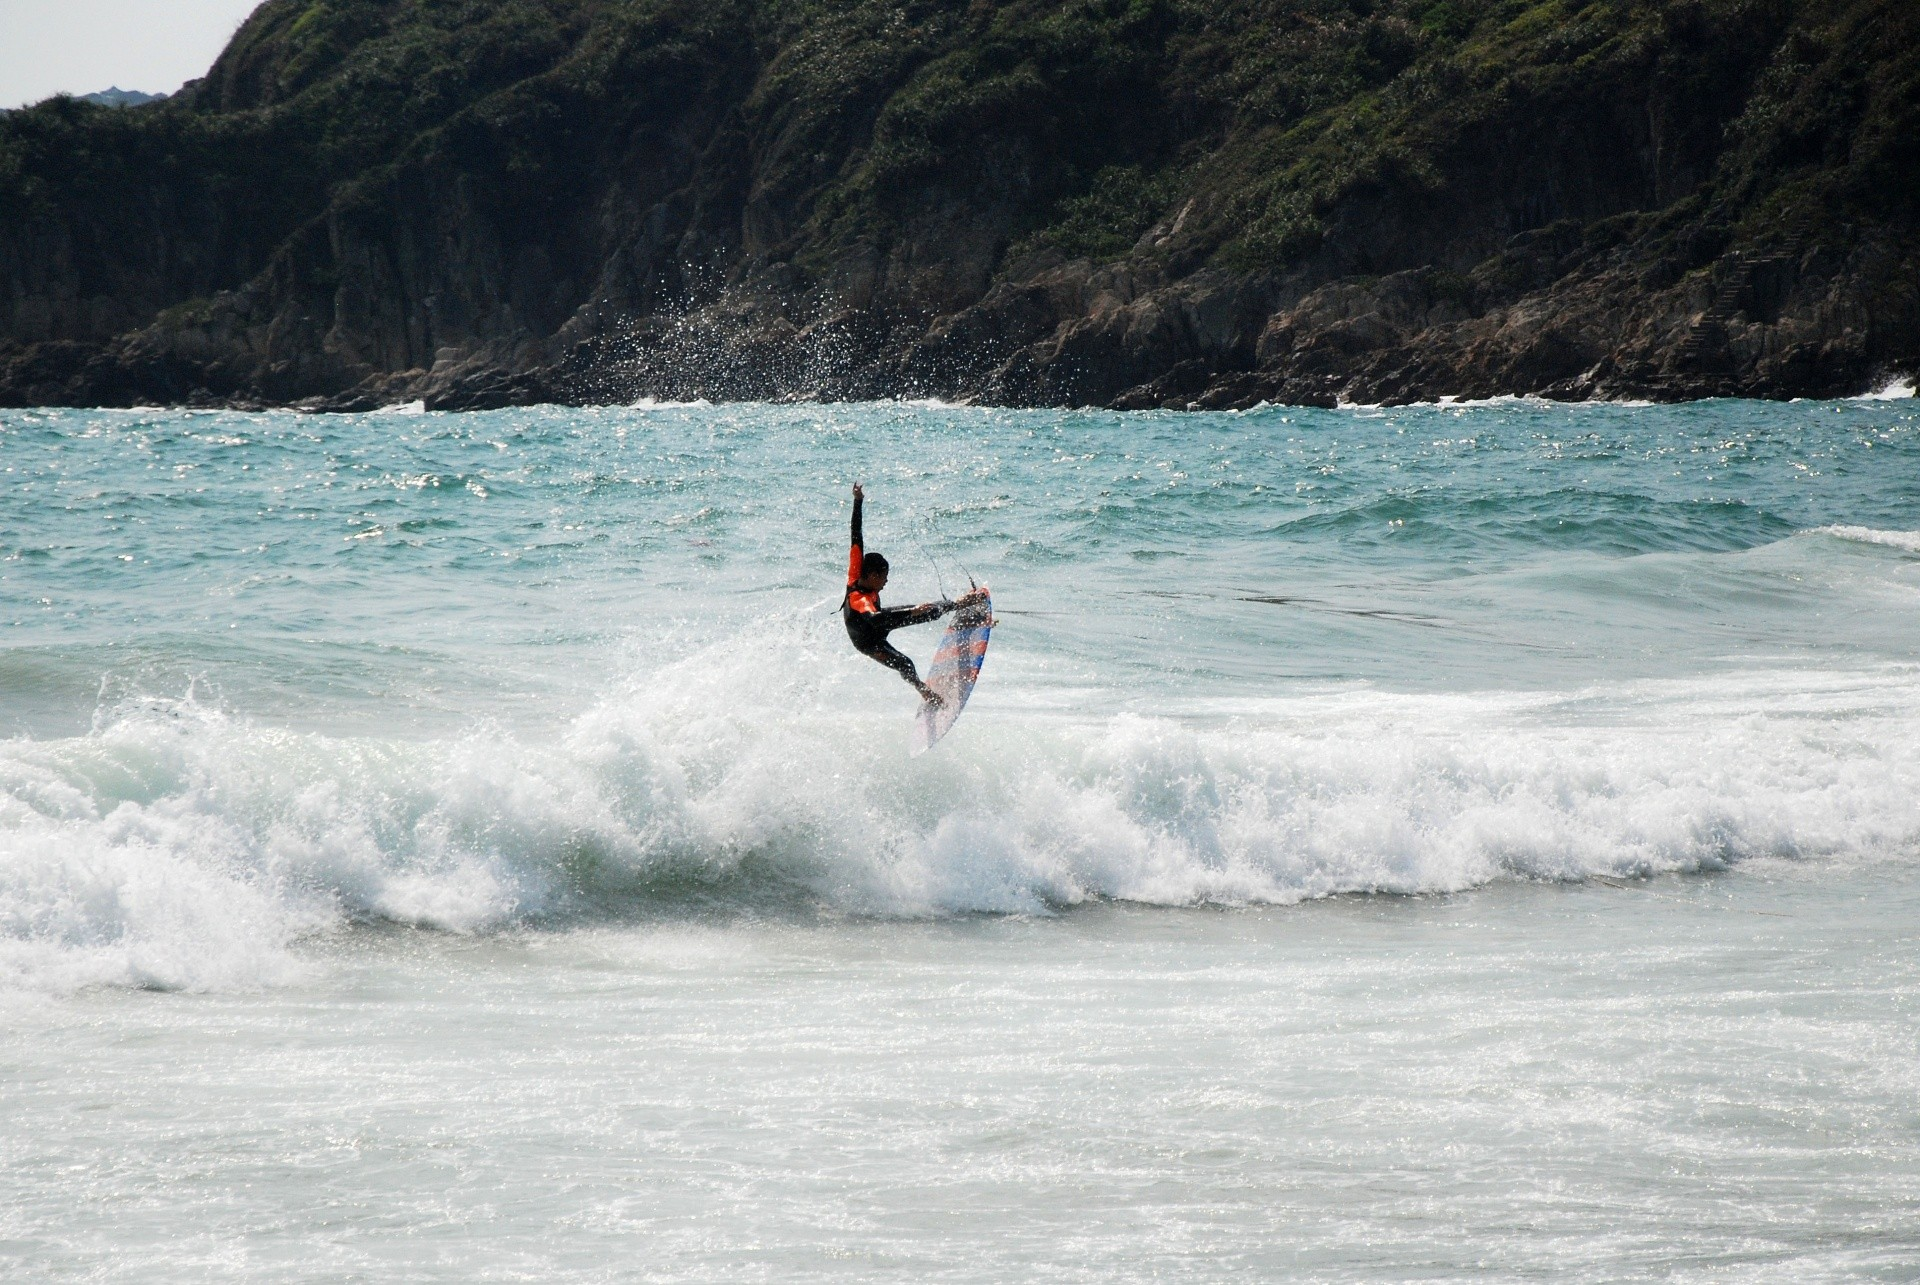 seasalt rider's photo of Big Wave Bay HK